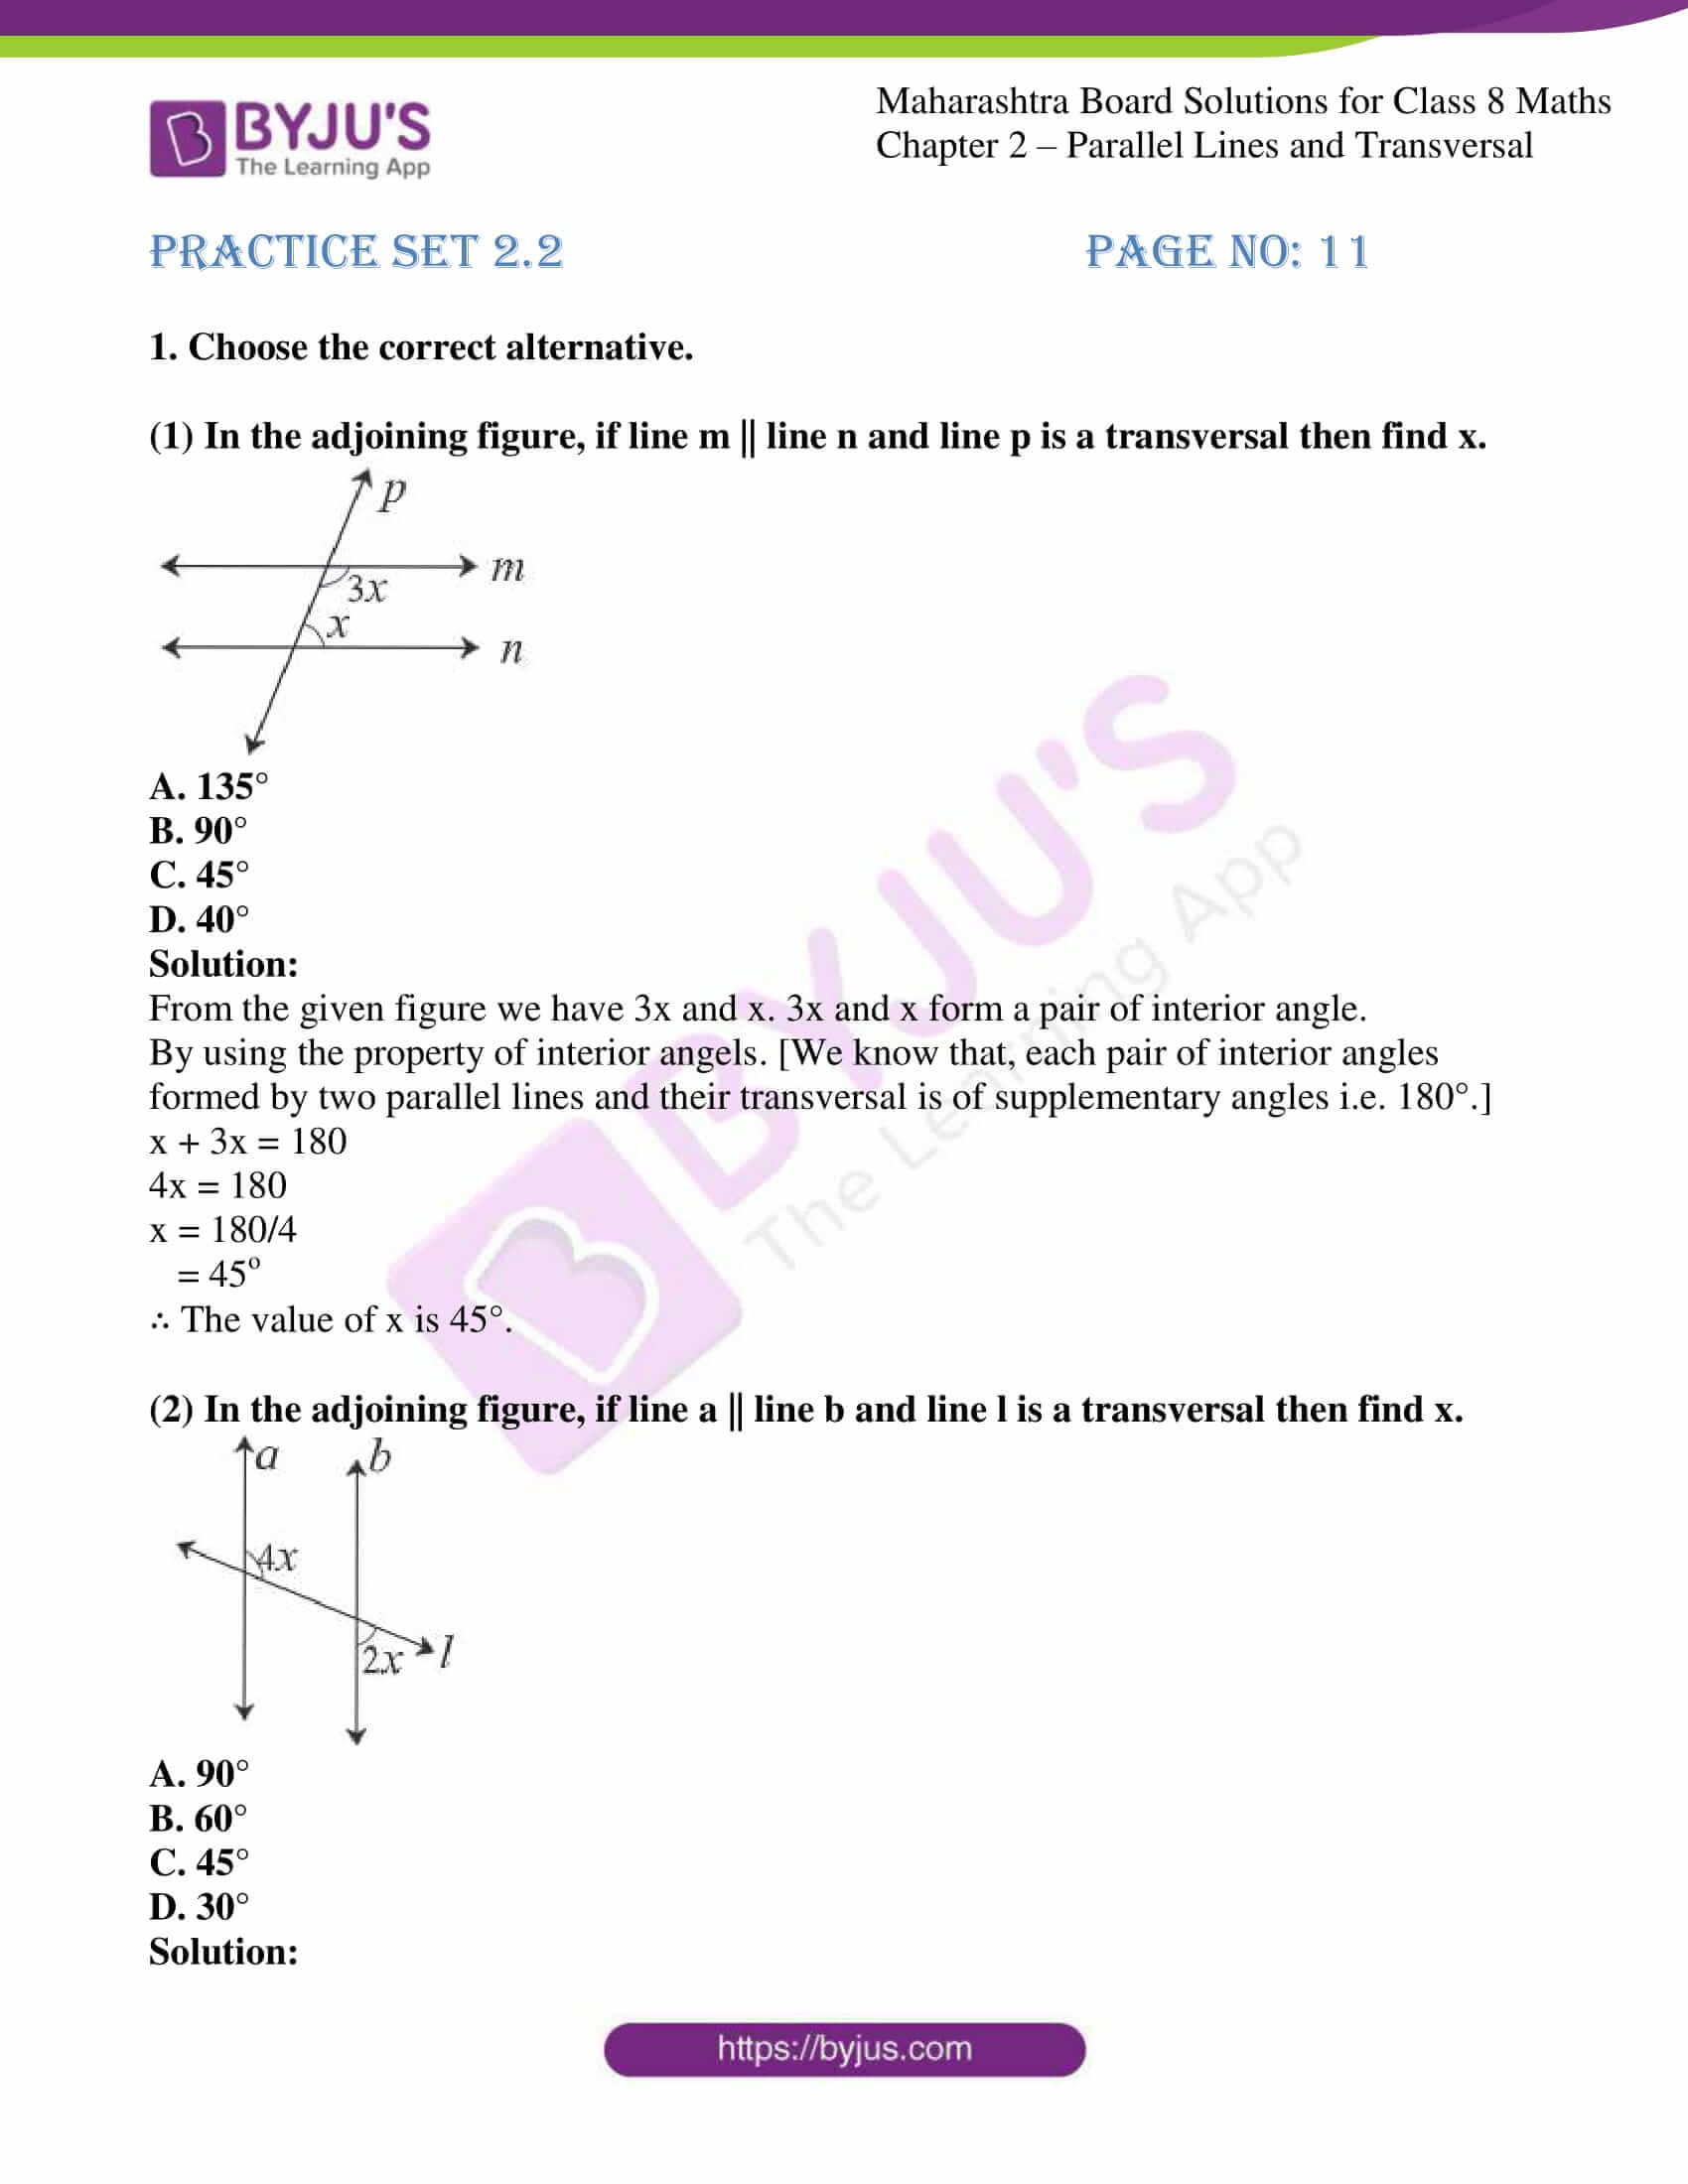 msbshse sol for class 8 maths chapter 2 04